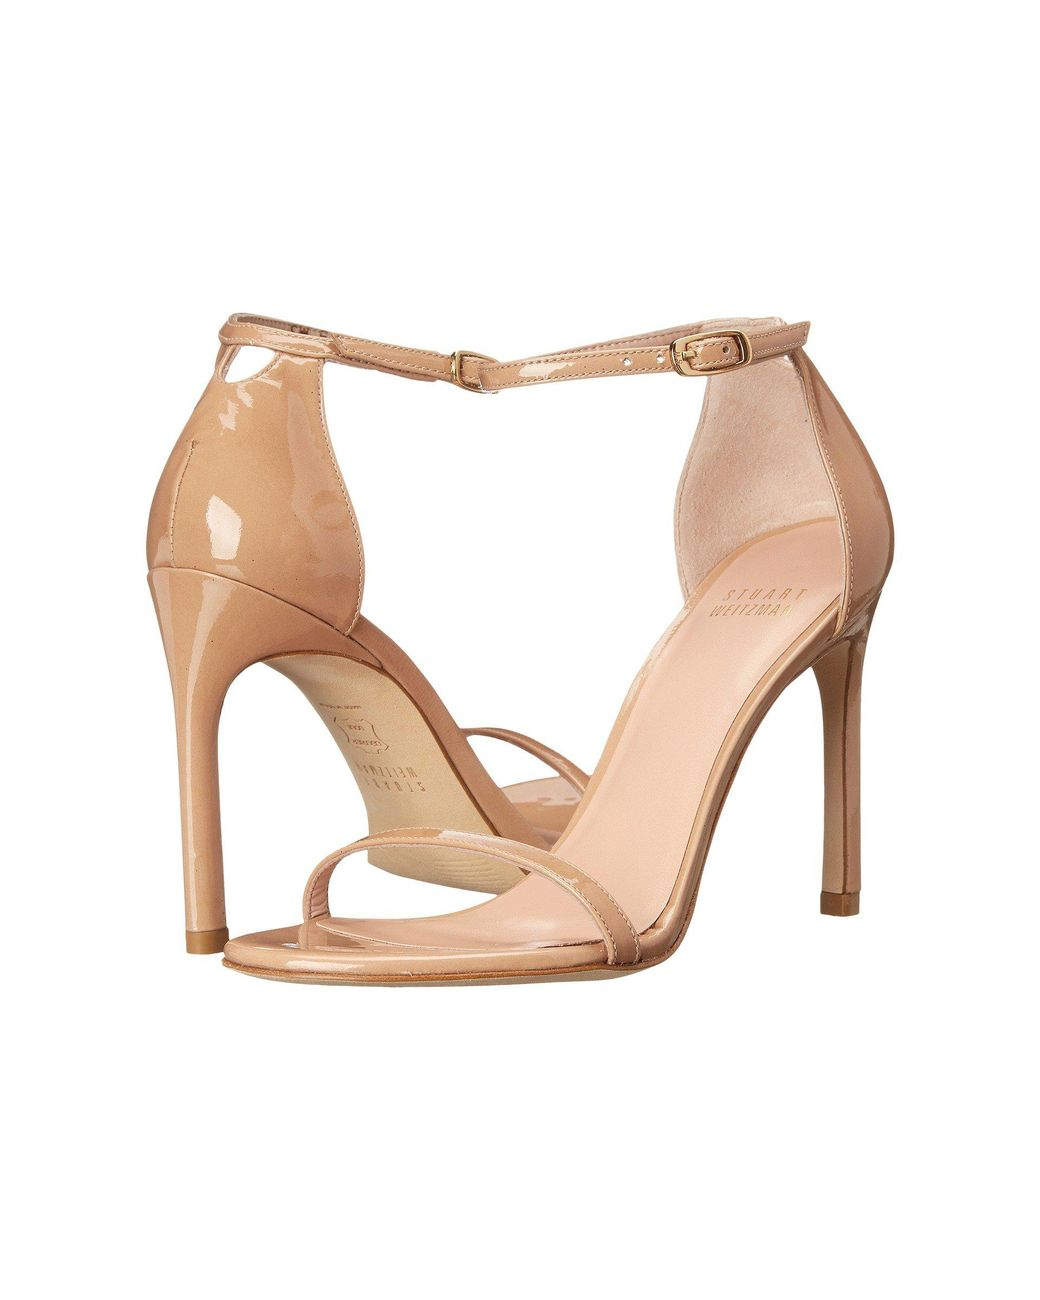 251598f2dcf Stuart Weitzman. Women s Natural  nudist Song  Ankle Strap Patent Leather  Sandals